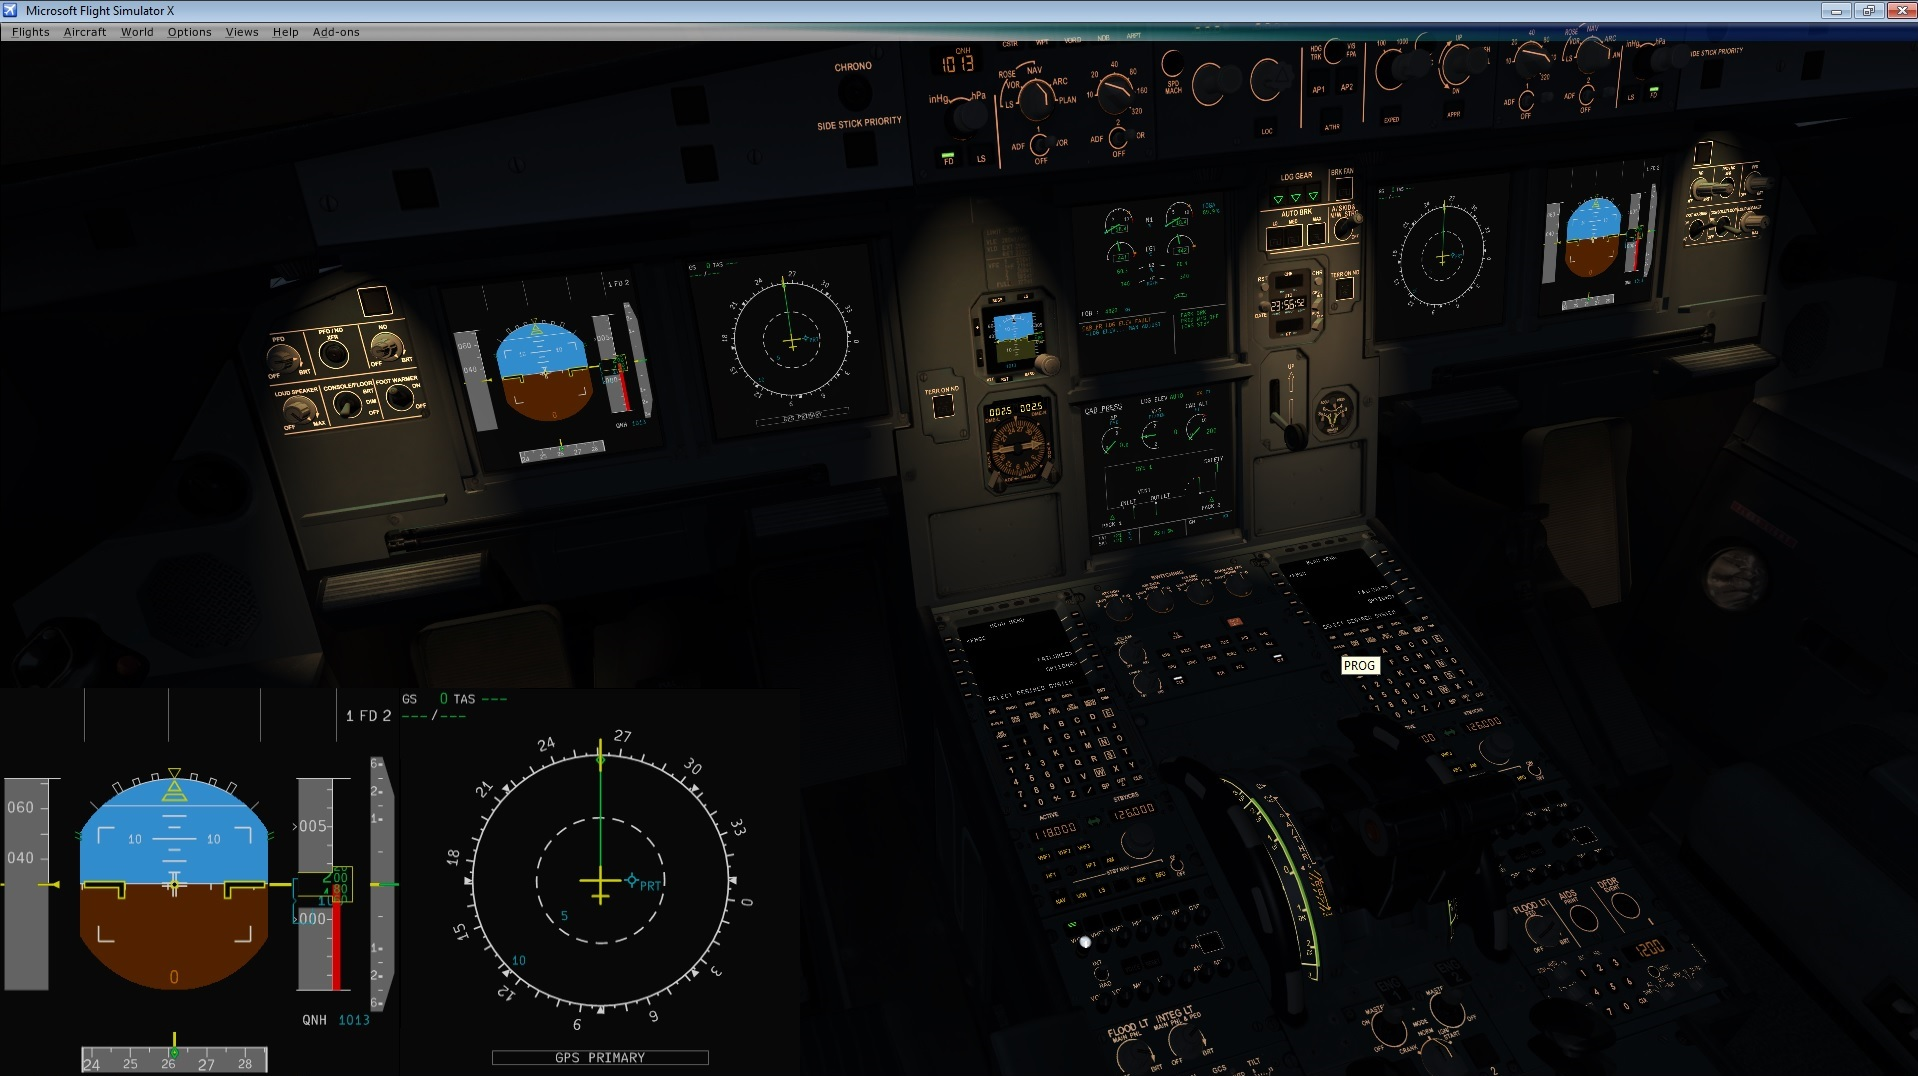 How to solve Blurry cockpit issues - Read These First